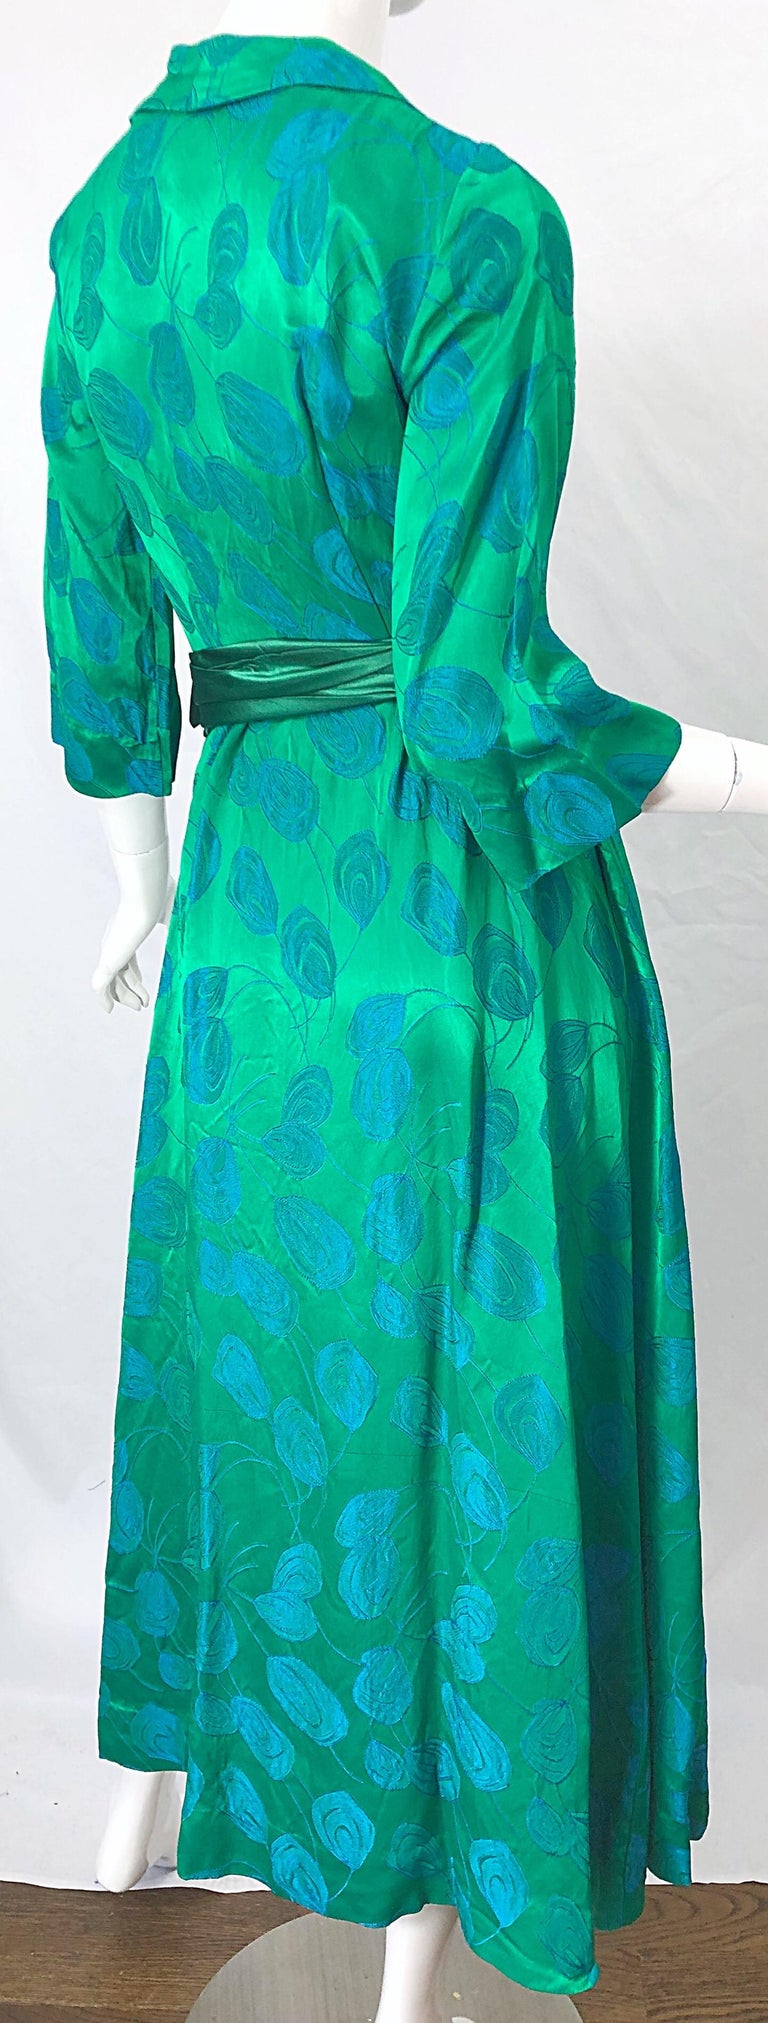 1950s Kelly Green + Blue Flower Print Rayon Rhinestone Vintage 50s Wrap Dress For Sale 5